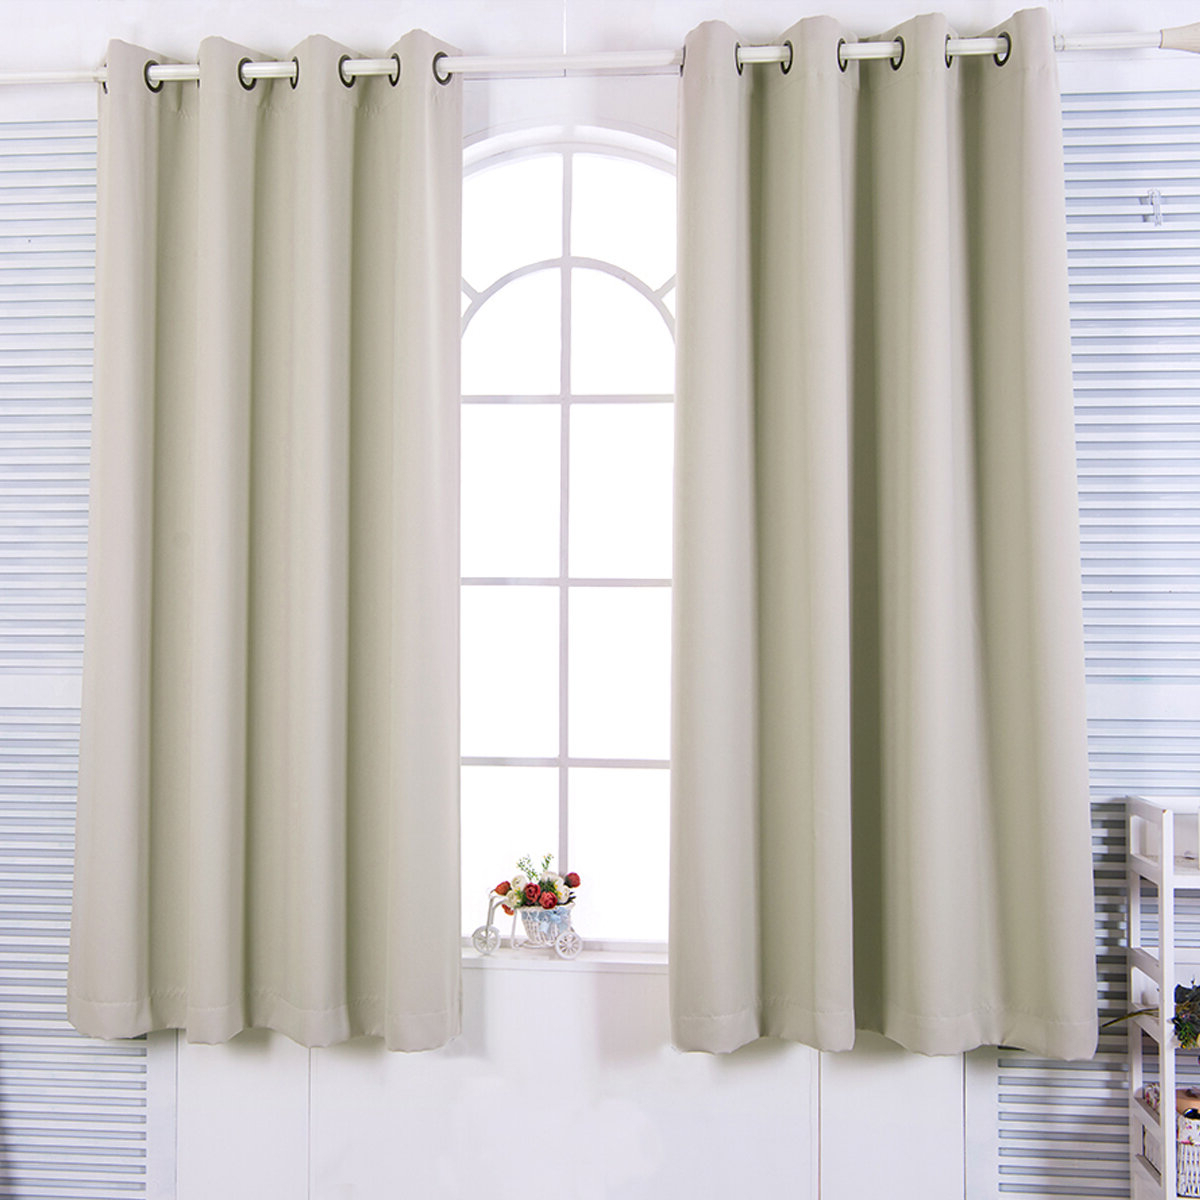 Most Recently Released Solid Insulated Thermal Blackout Curtain Panel Pairs In August Grove Victor Solid Blackout Thermal Grommet Curtain (View 20 of 20)